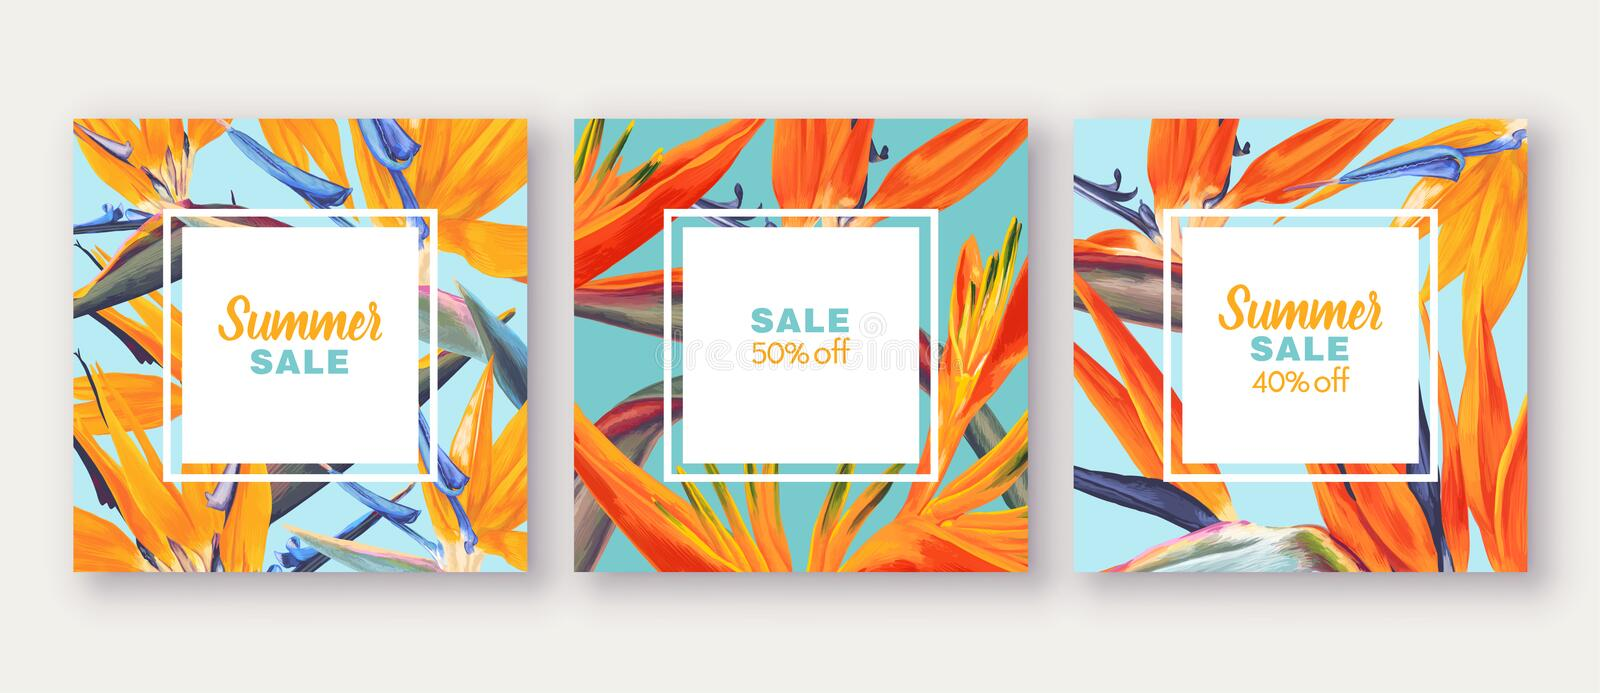 Summer sale banner with tropical flowers - Strelitzia, on background with bright colours. stock illustration